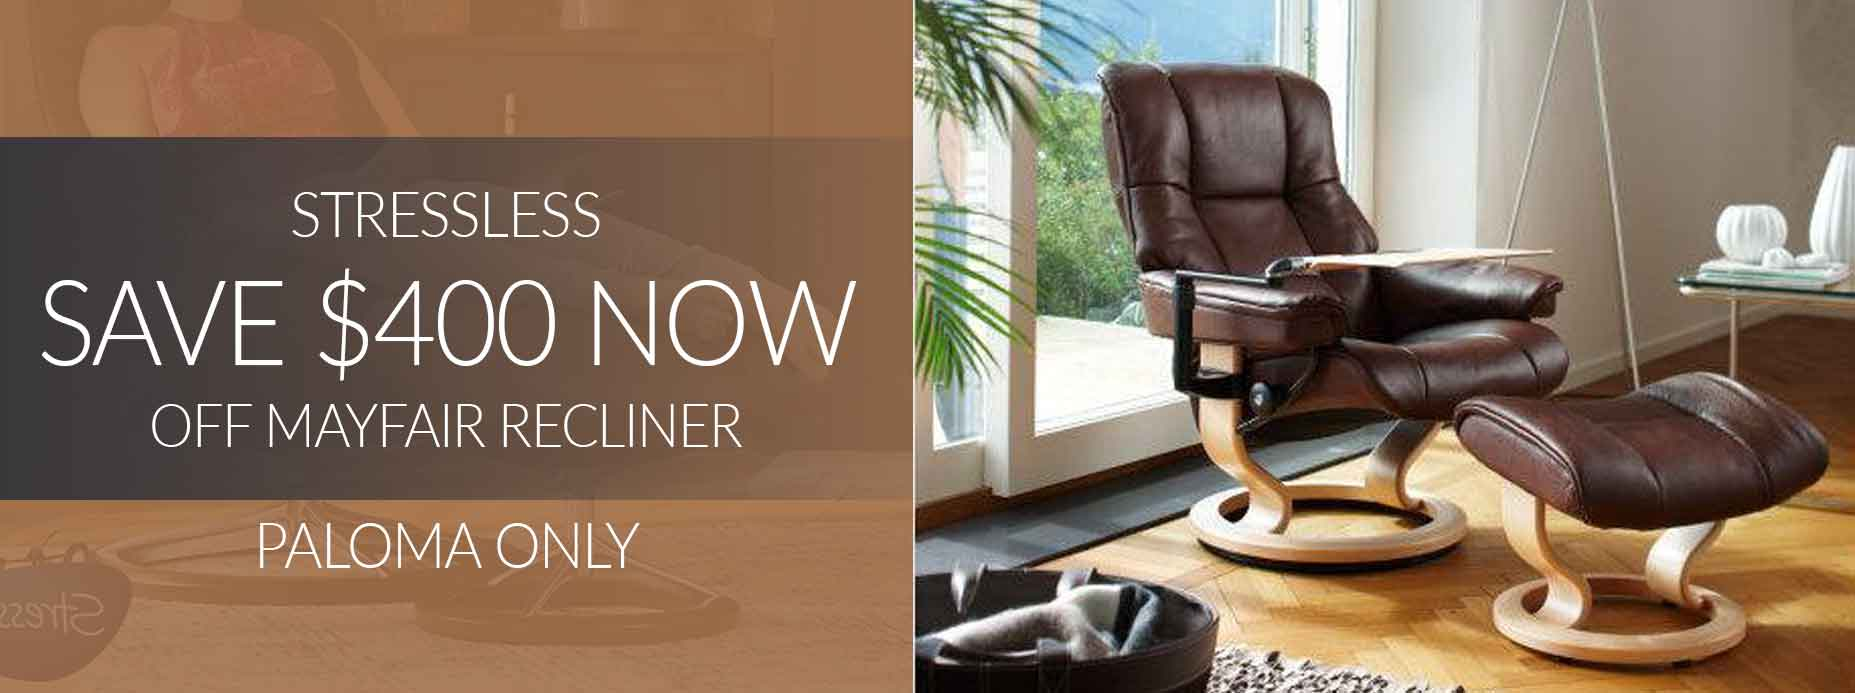 Save $400 on Stressless Mayfair